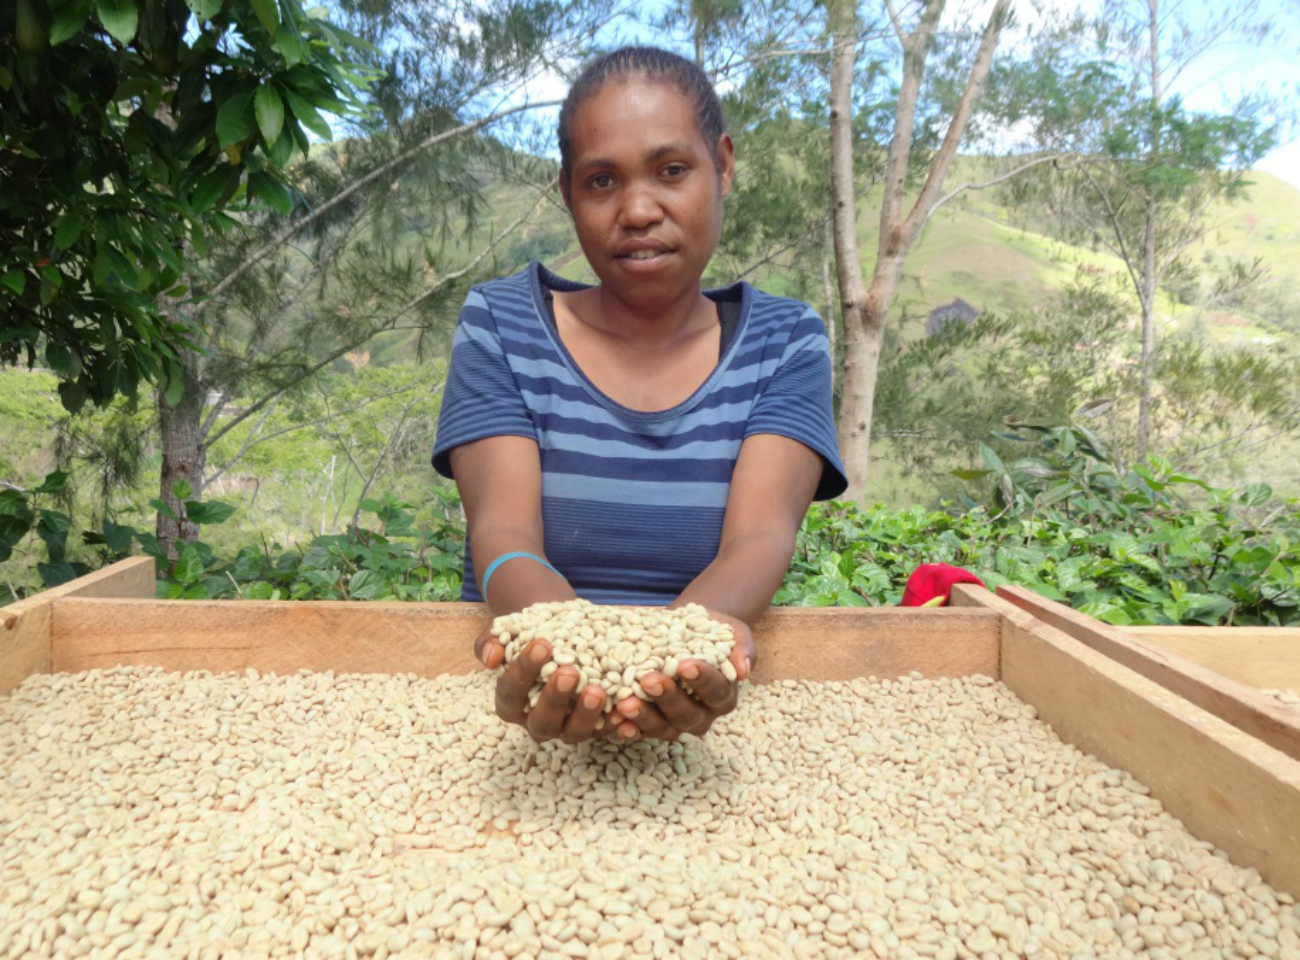 A woman farmer in Papua New Guinea with coffee parchment